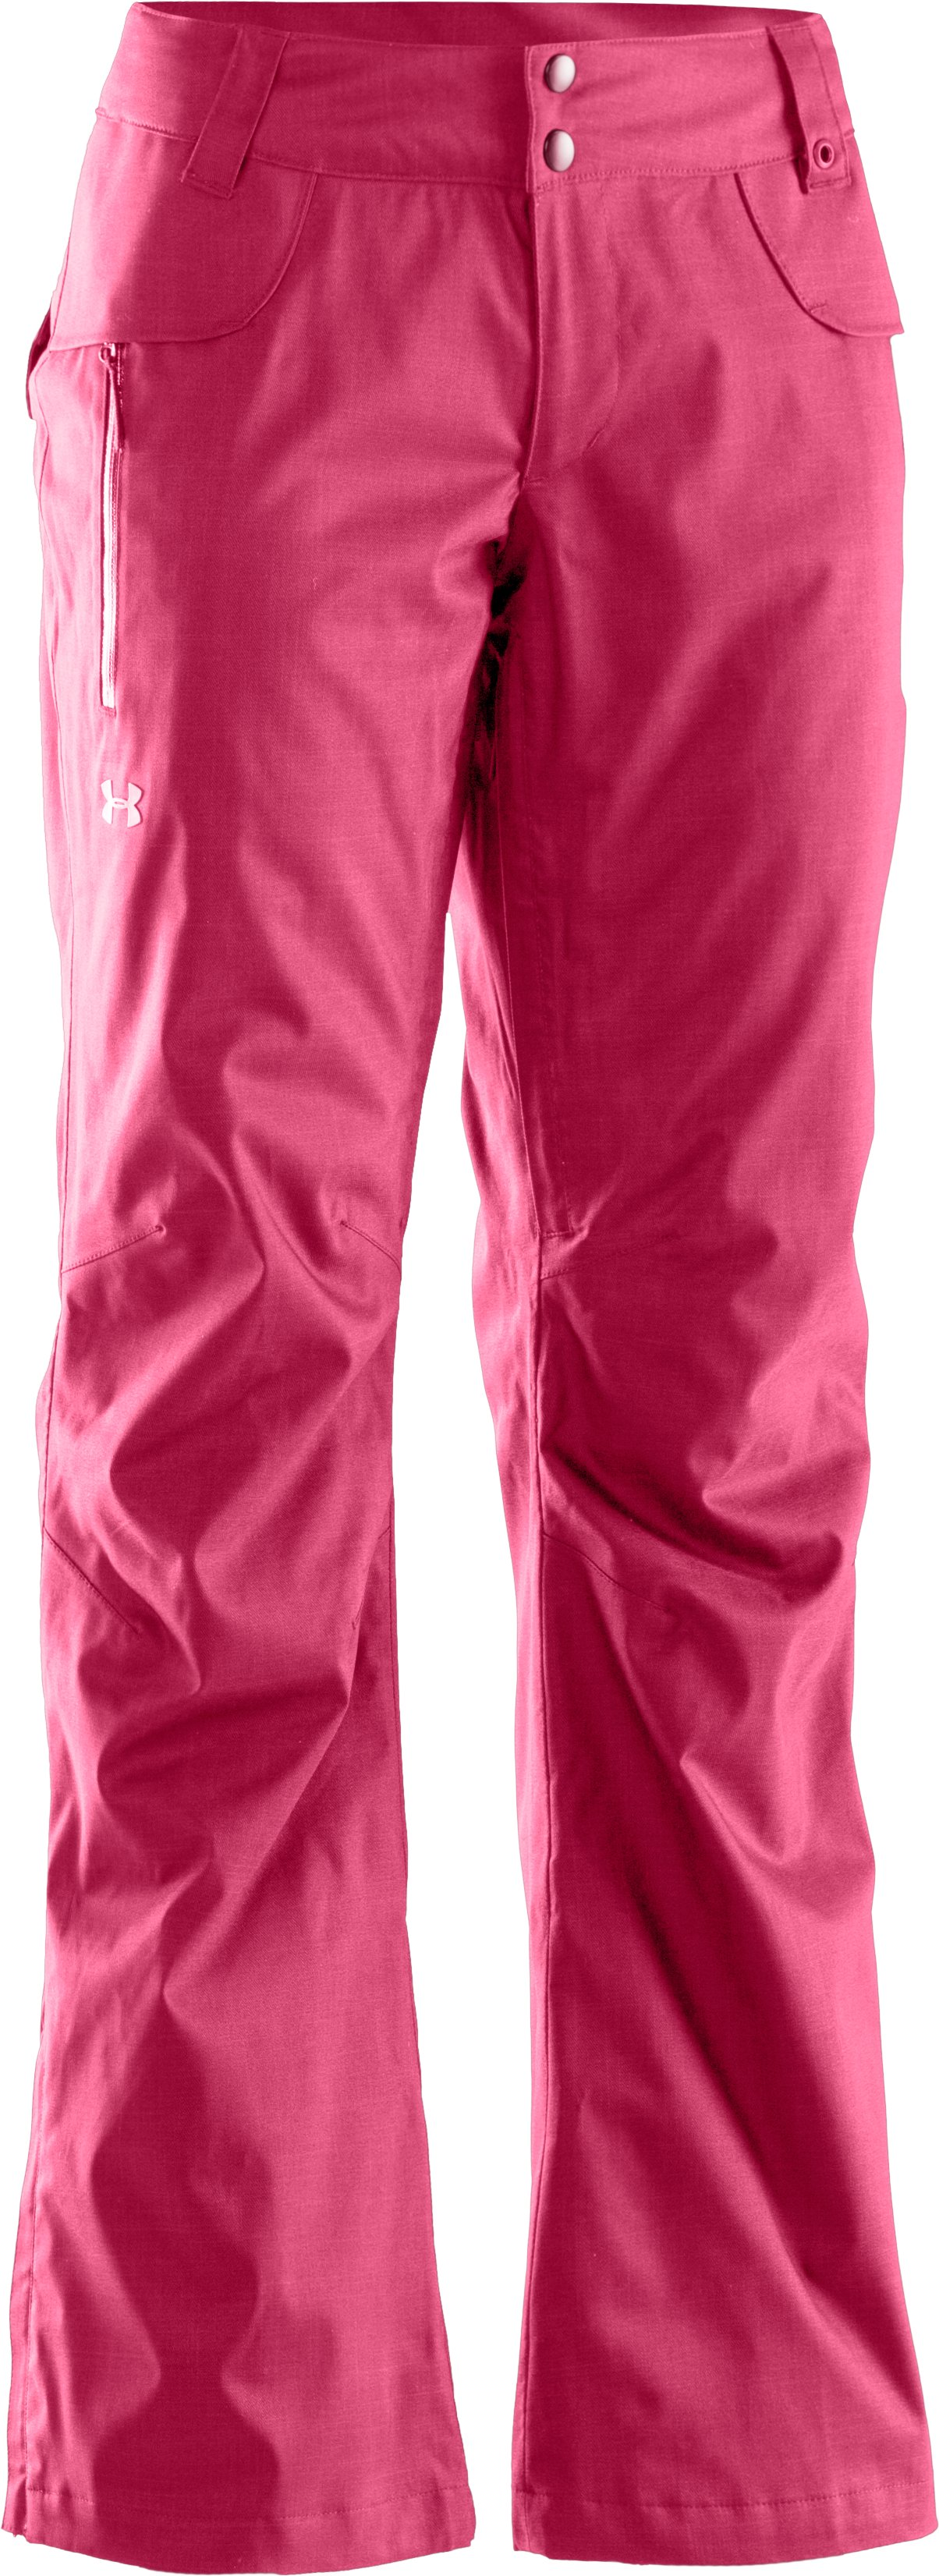 Women's ColdGear® Infrared Wendy Pant, Lollipop